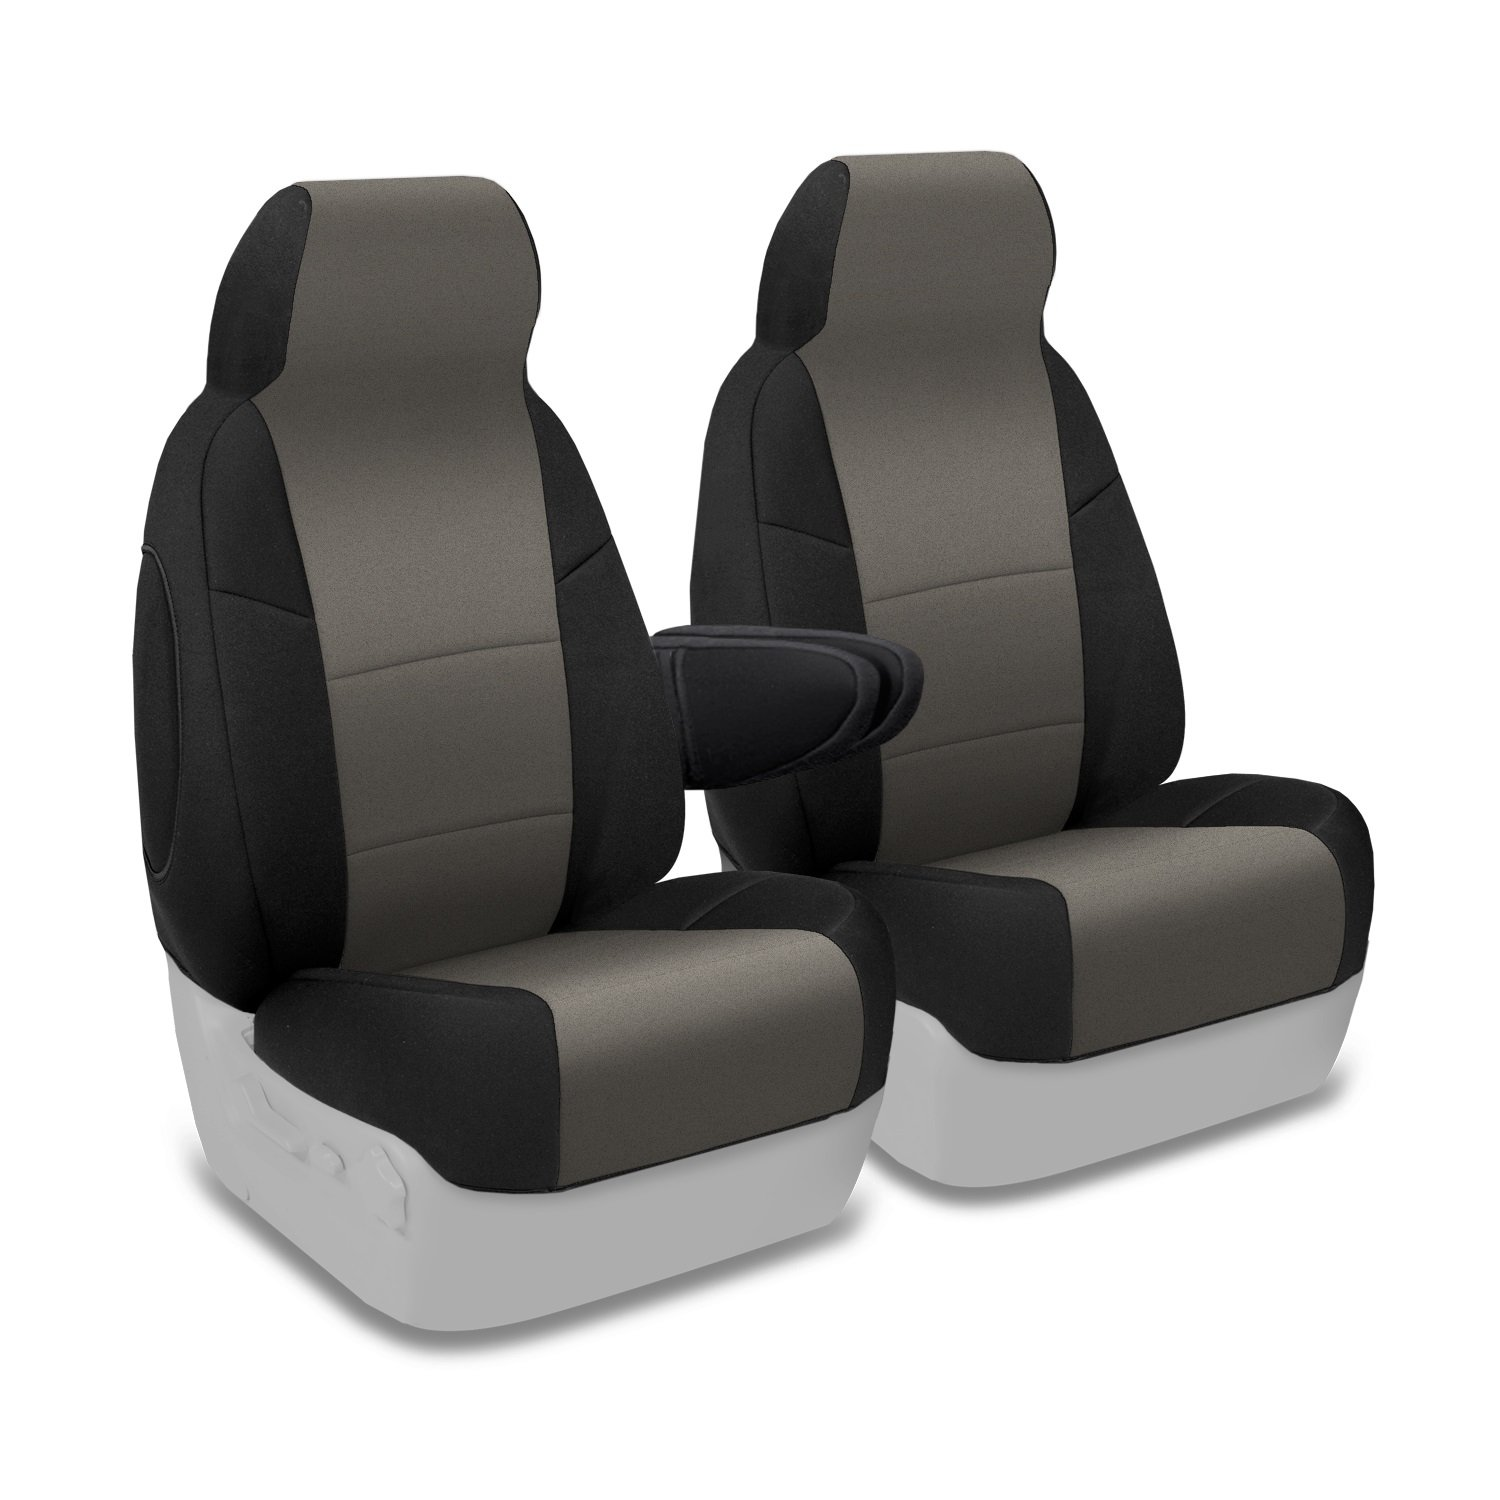 Blue with Black Sides Coverking Custom Fit Front 50//50 Bucket Seat Cover for Select Chevrolet Tahoe Models Neosupreme